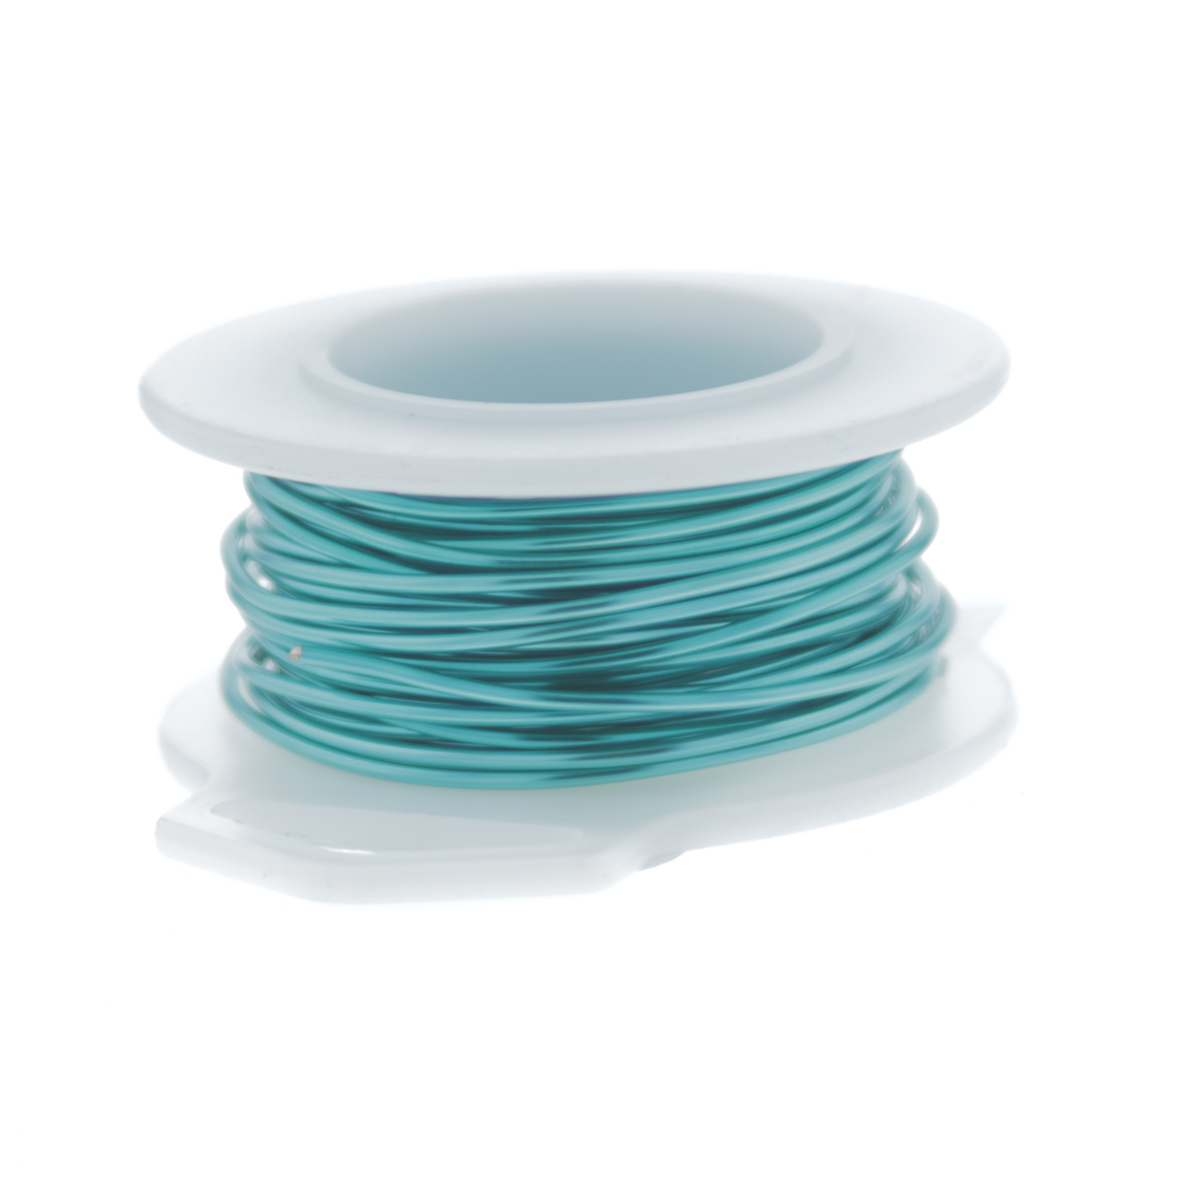 26 Gauge Round Silver Plated Pacific Blue Copper Craft Wire - 45 ft